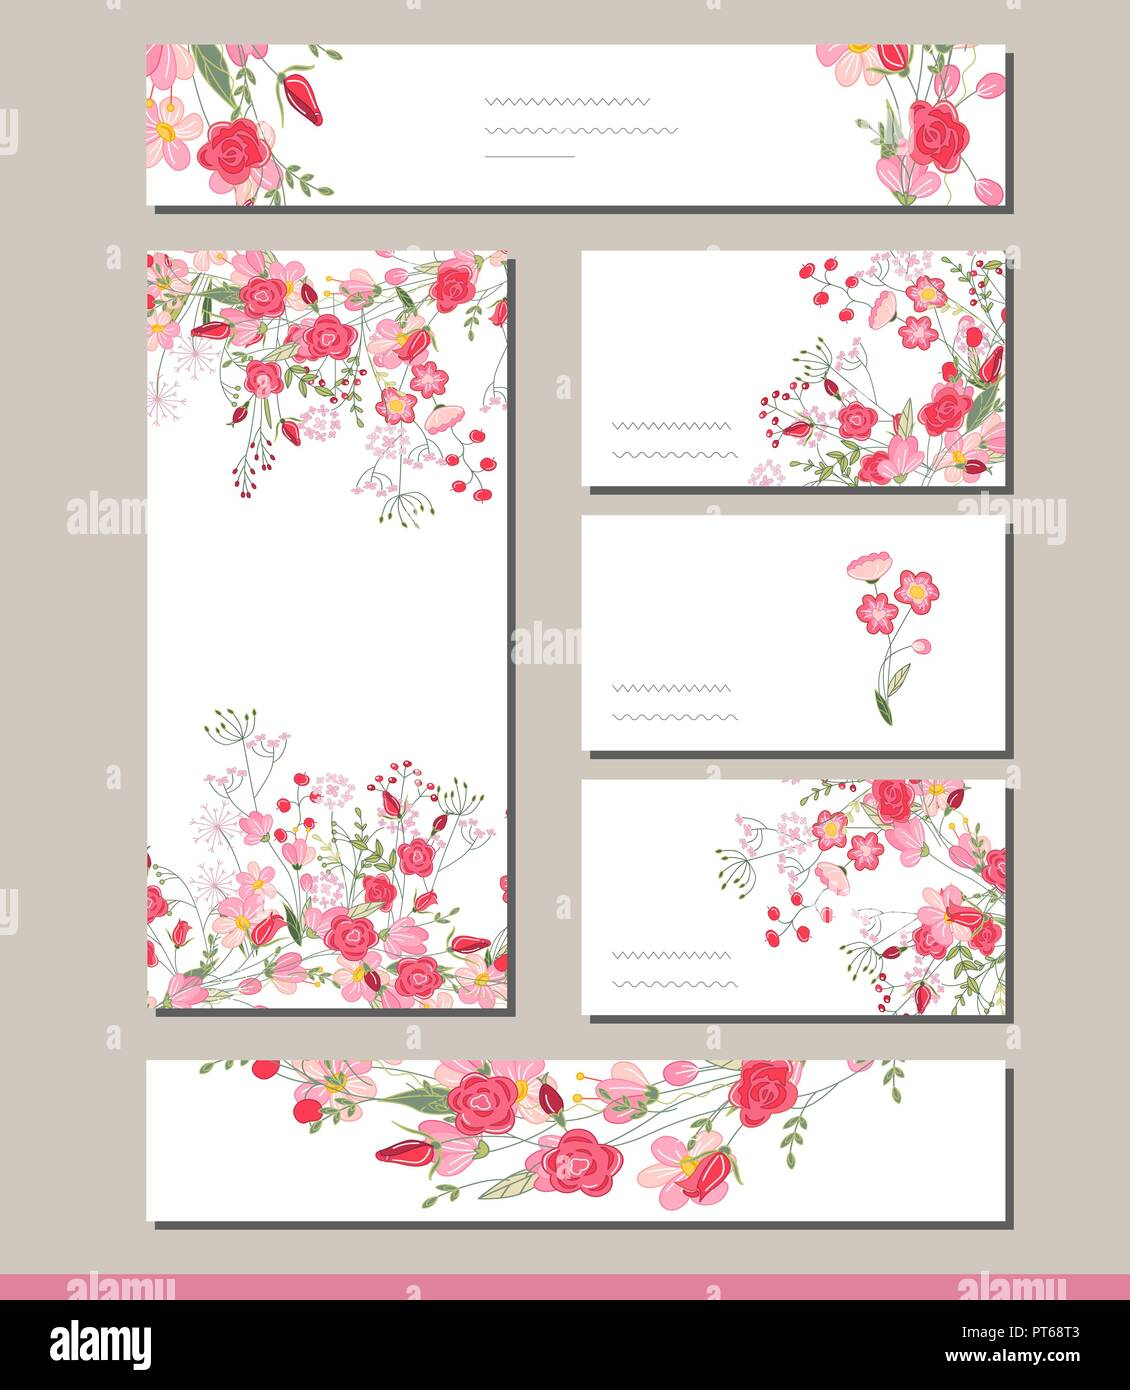 floral spring templates with cute bunches of red roses for romantic